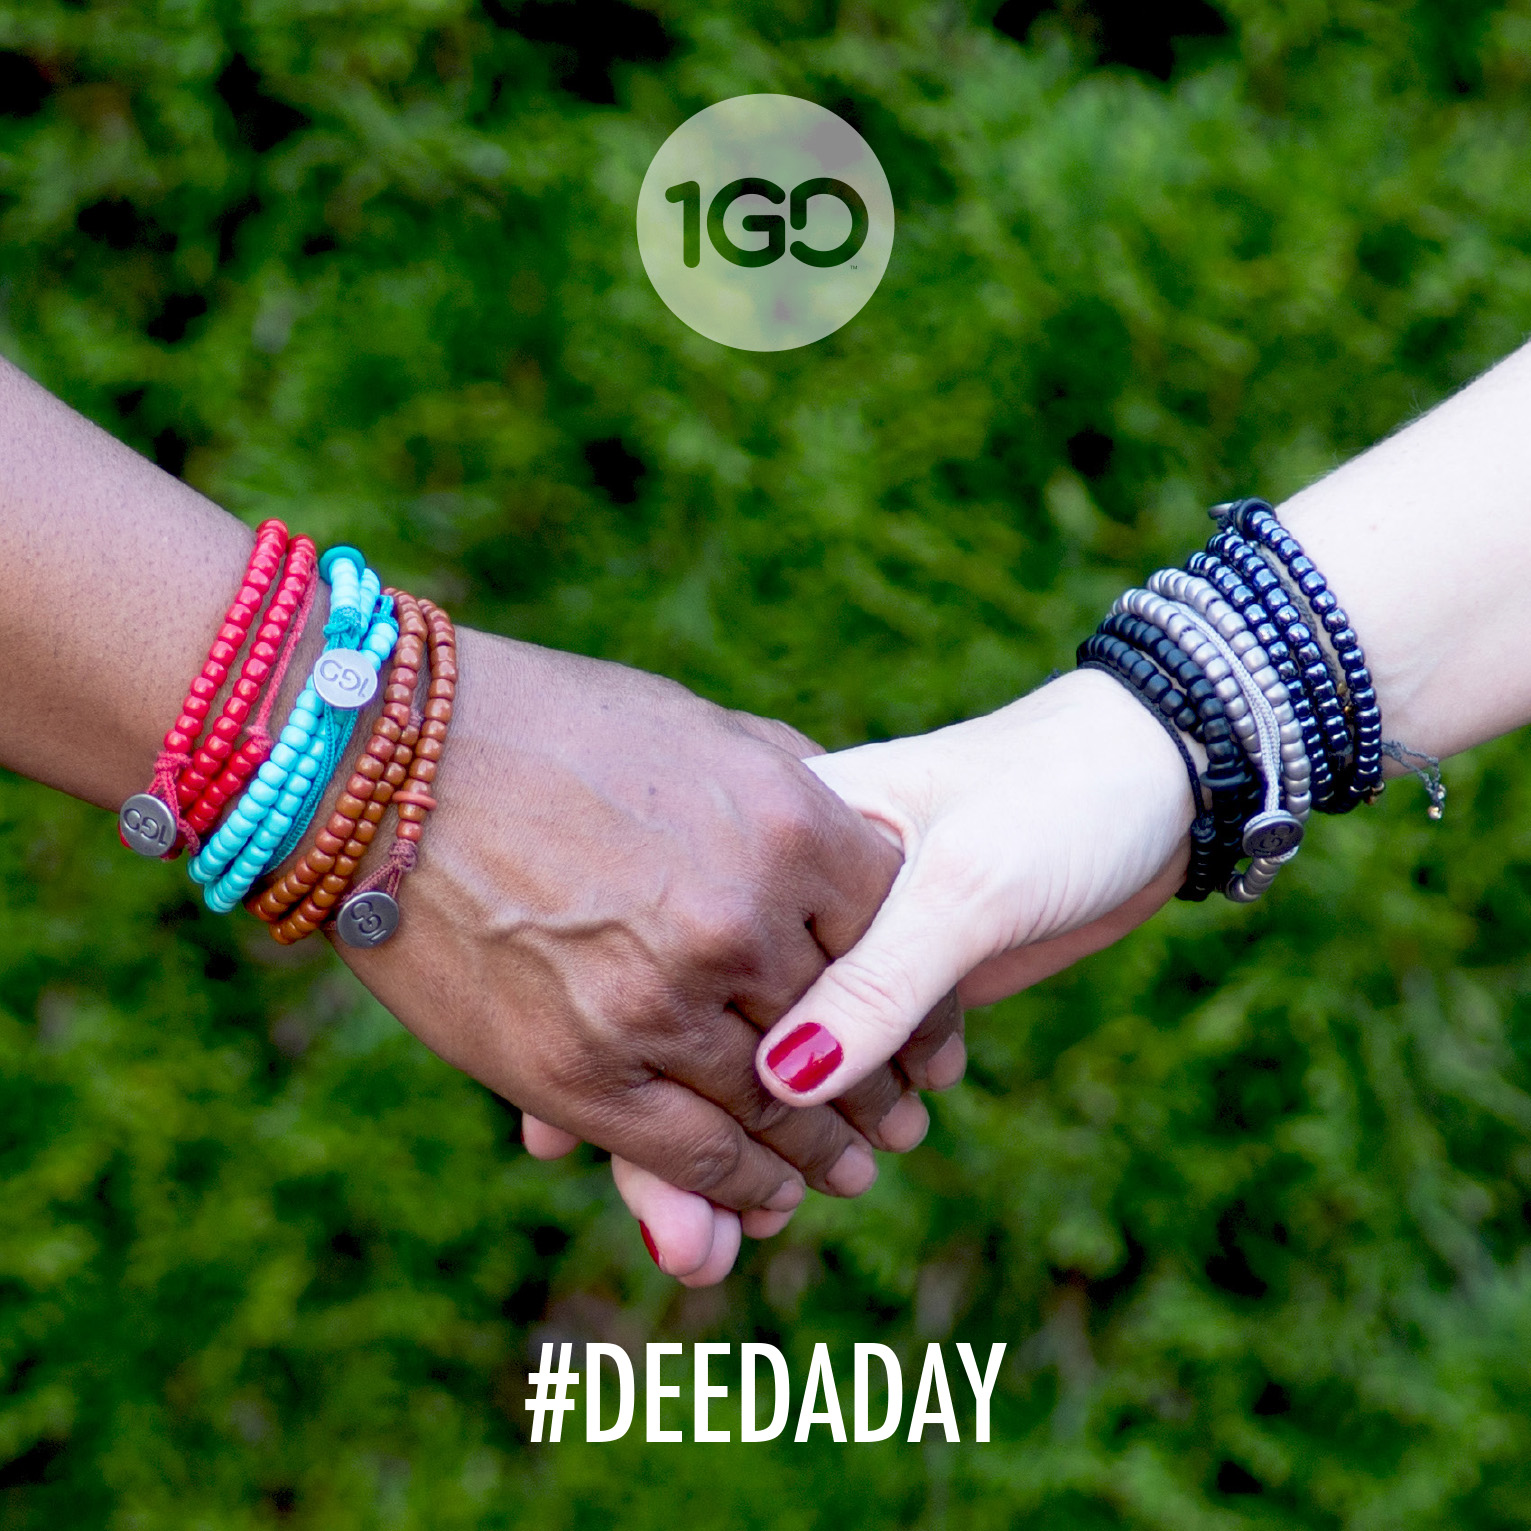 100 Good Deeds Bracelet #DeedADay hands